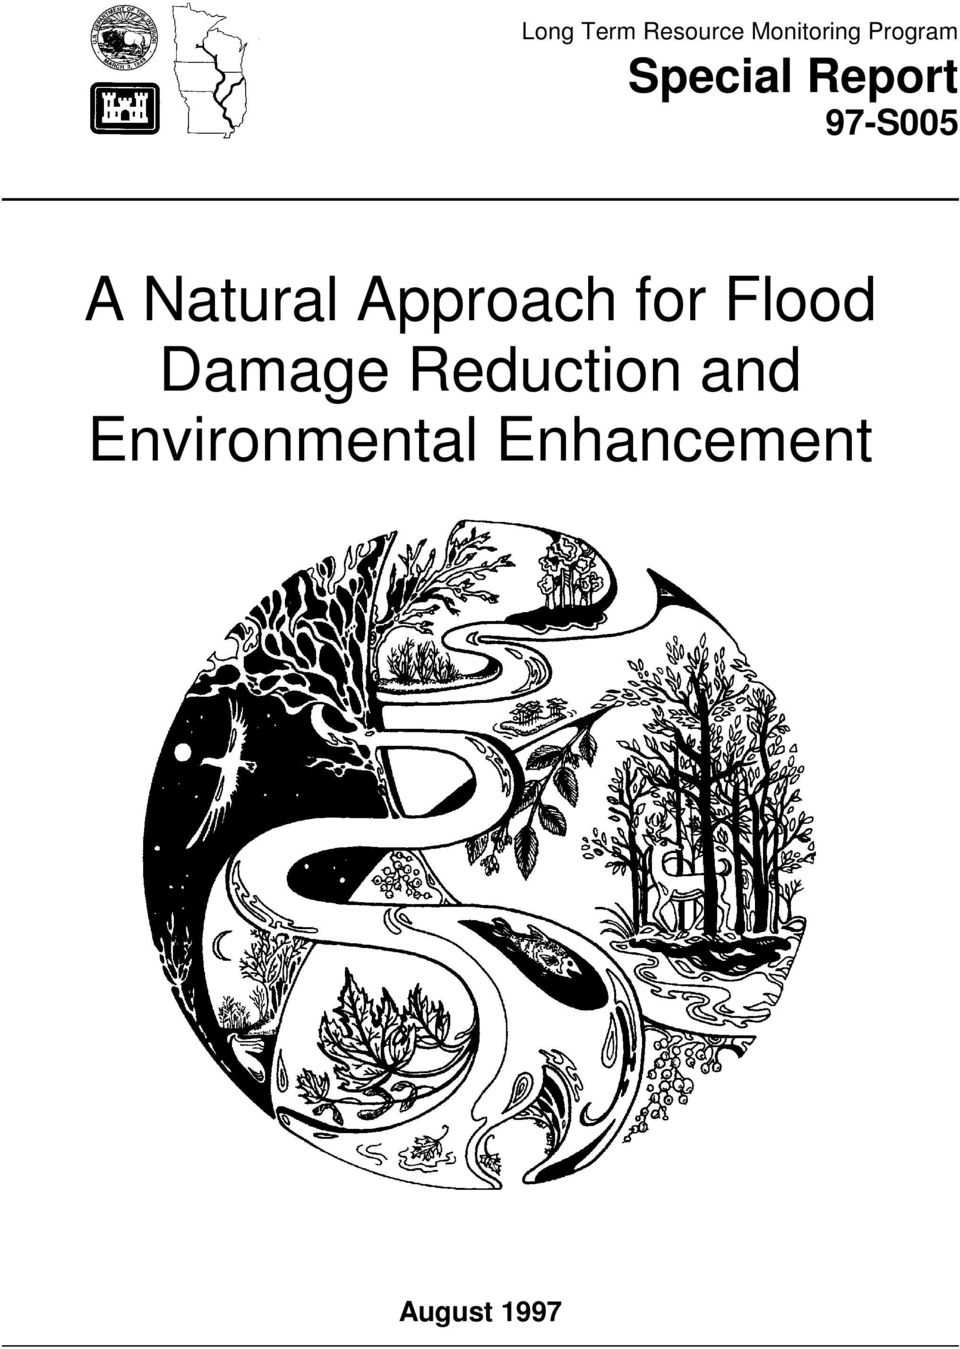 Natural Approach for Flood Damage